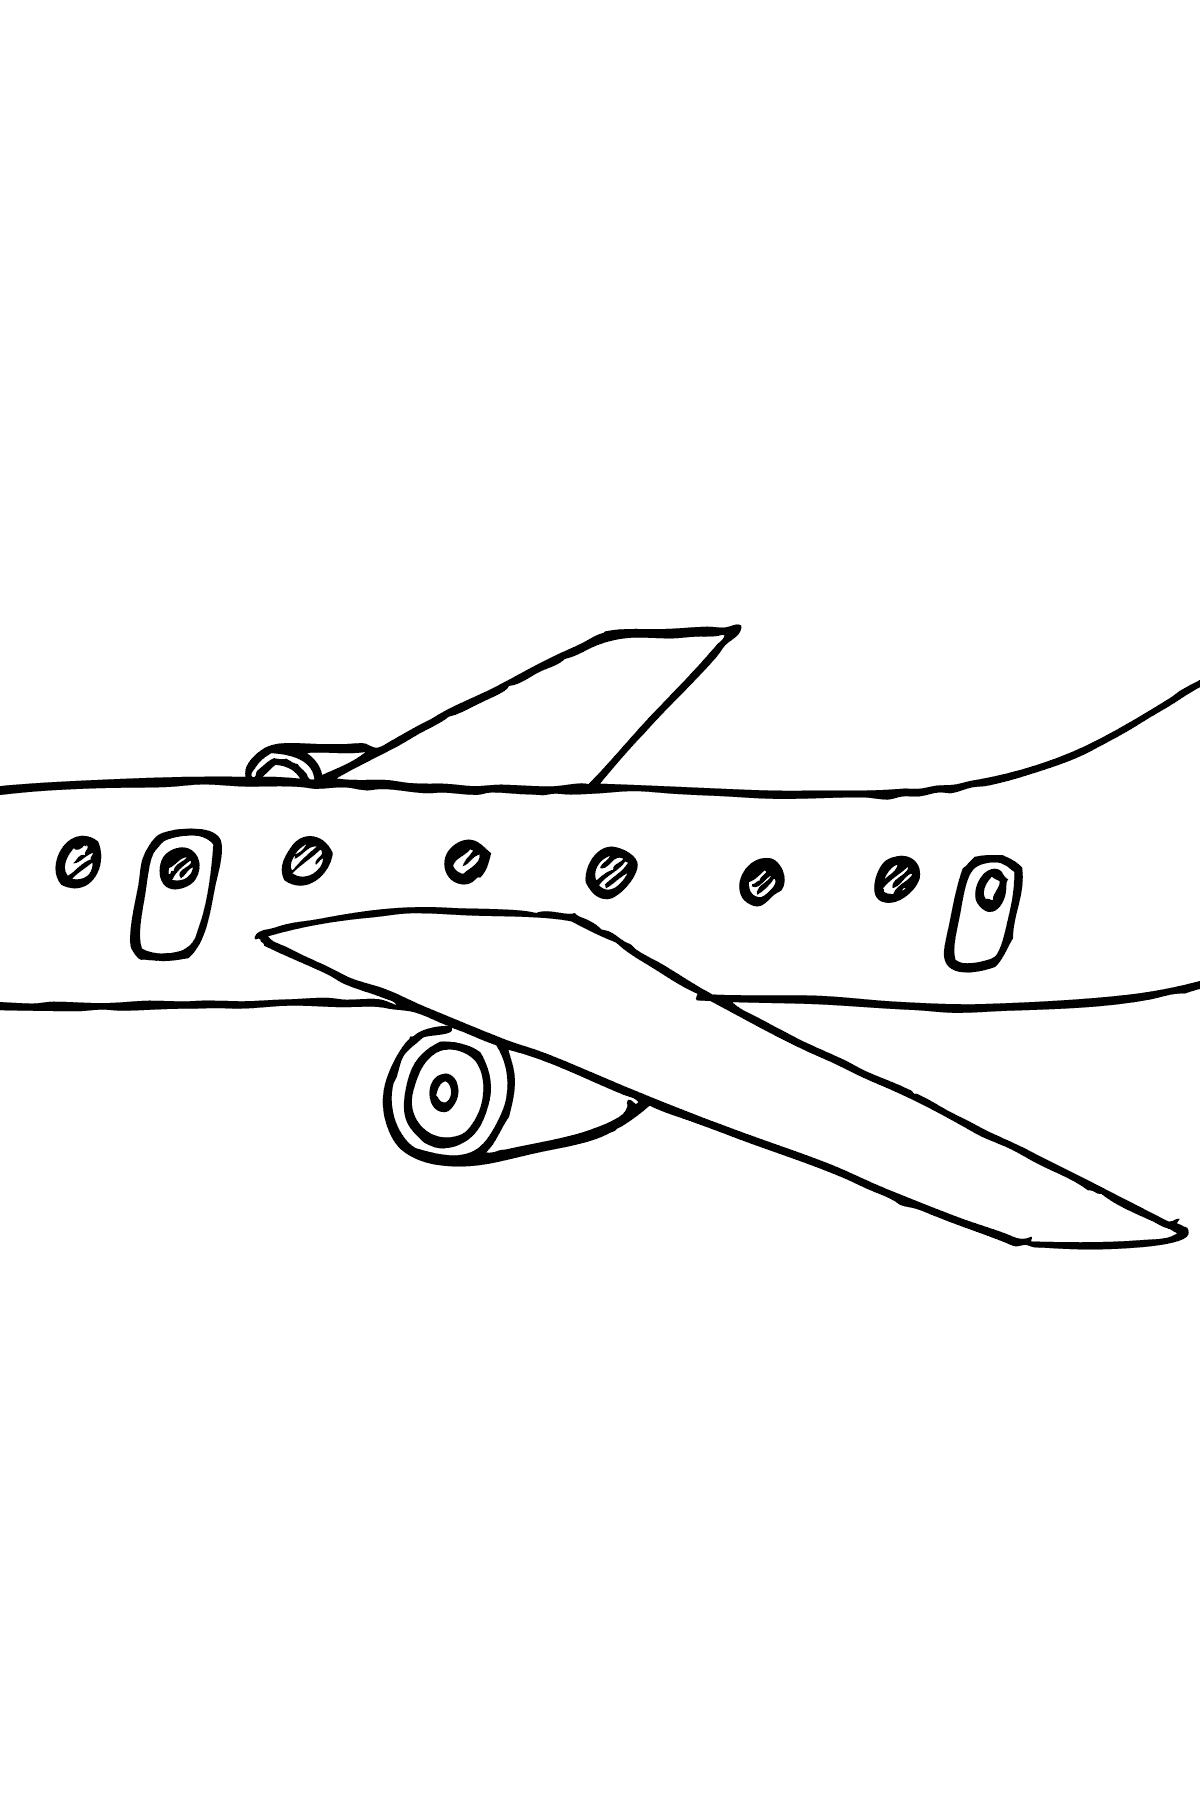 Coloring Page - A Commercial Jet - Coloring Pages for Kids